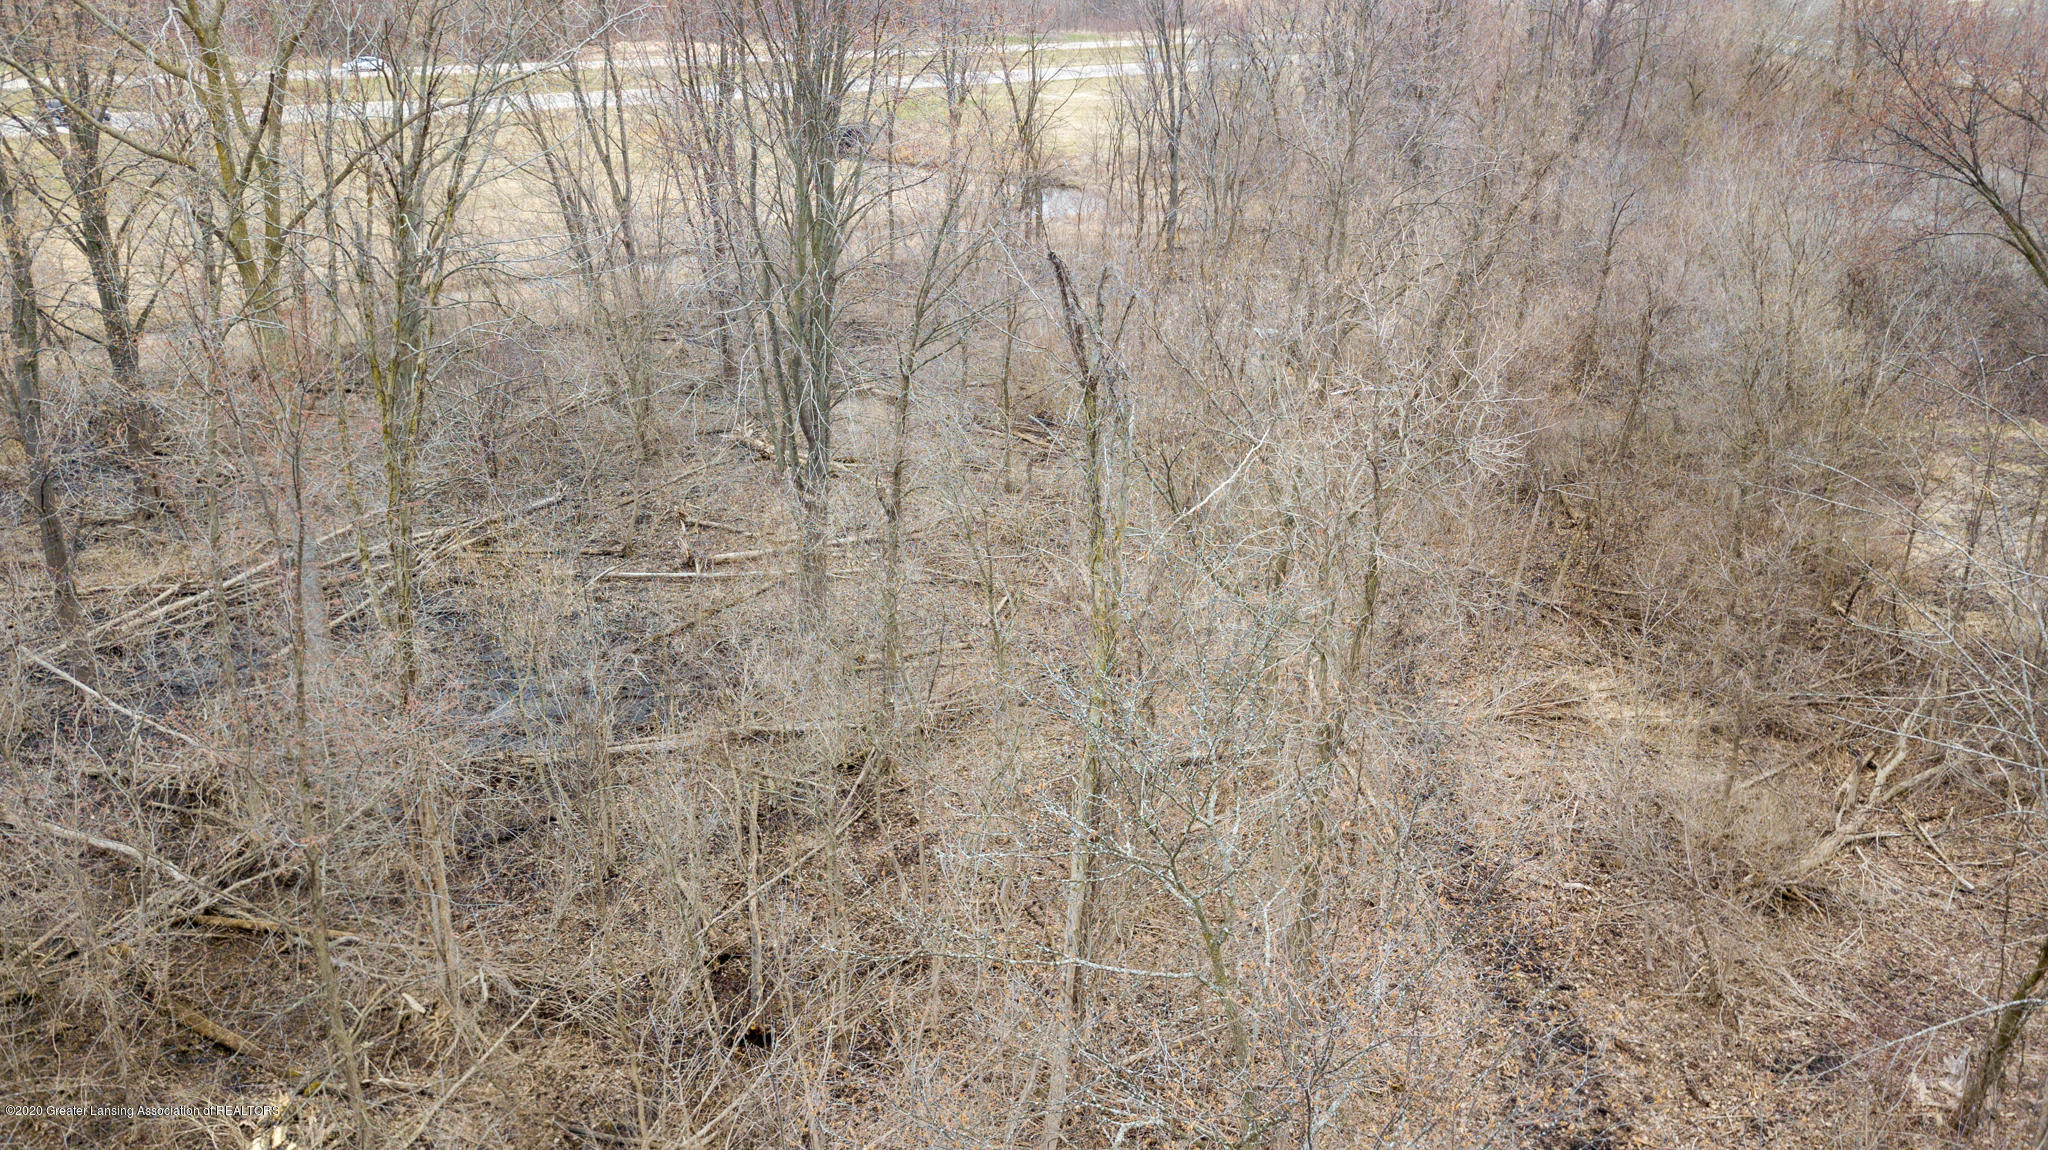 Vl S Lowell Rd - Lowell_Rd_VACANT_BROCK-19 - 23